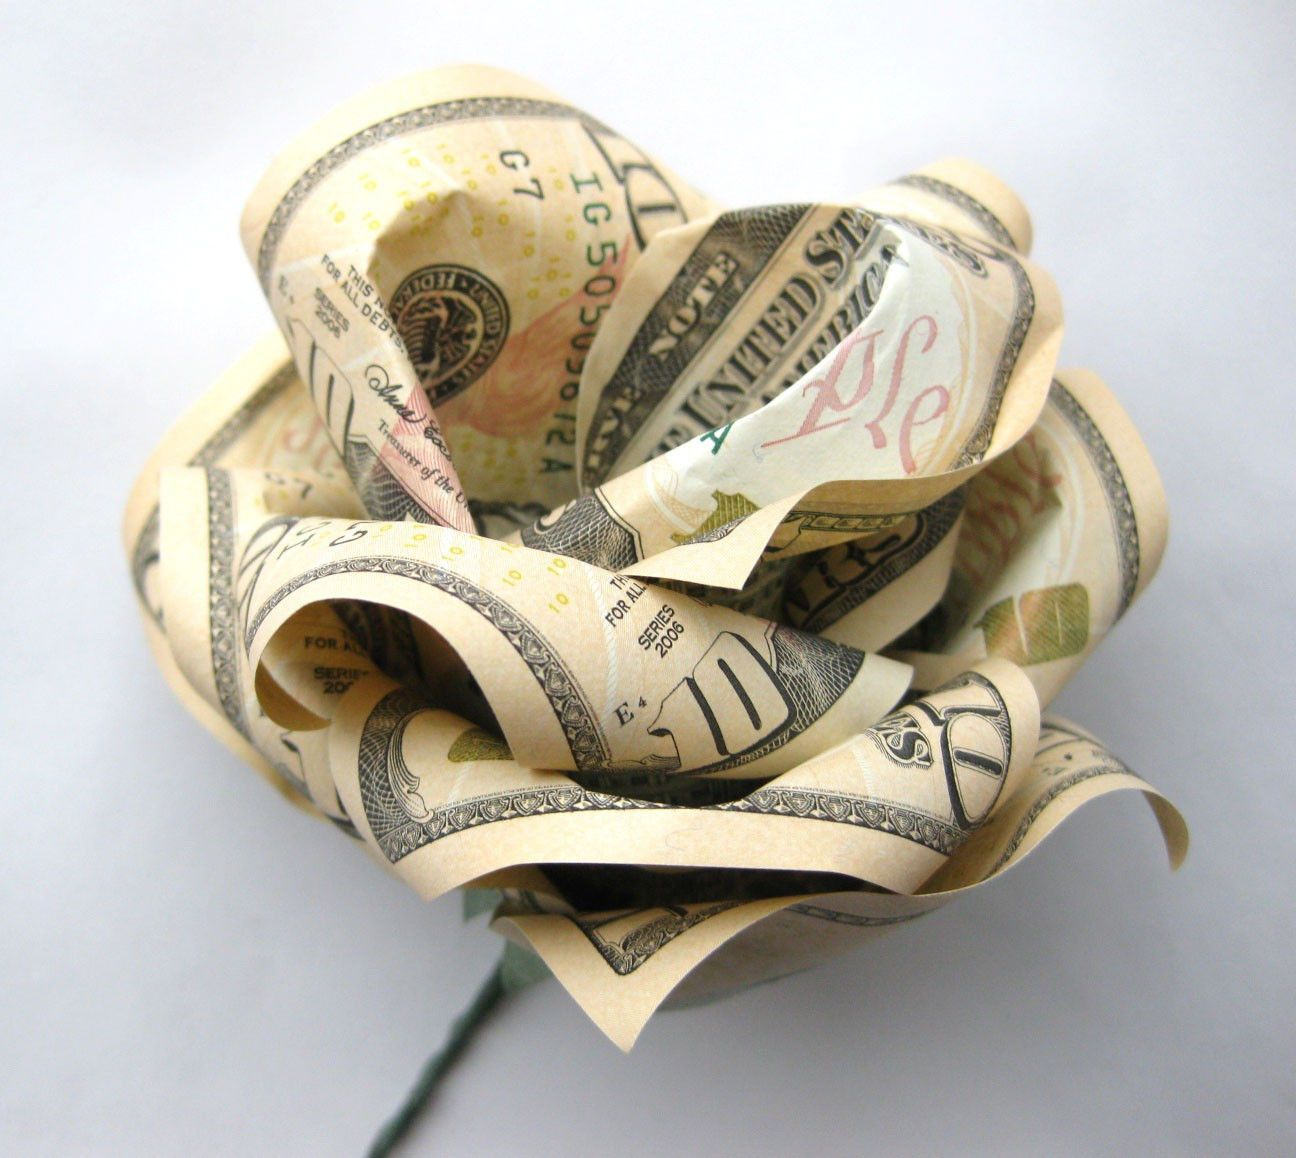 Beautiful money origami art pieces many designs made of real 10 bill rose flower money origami dollar bill art jeuxipadfo Images